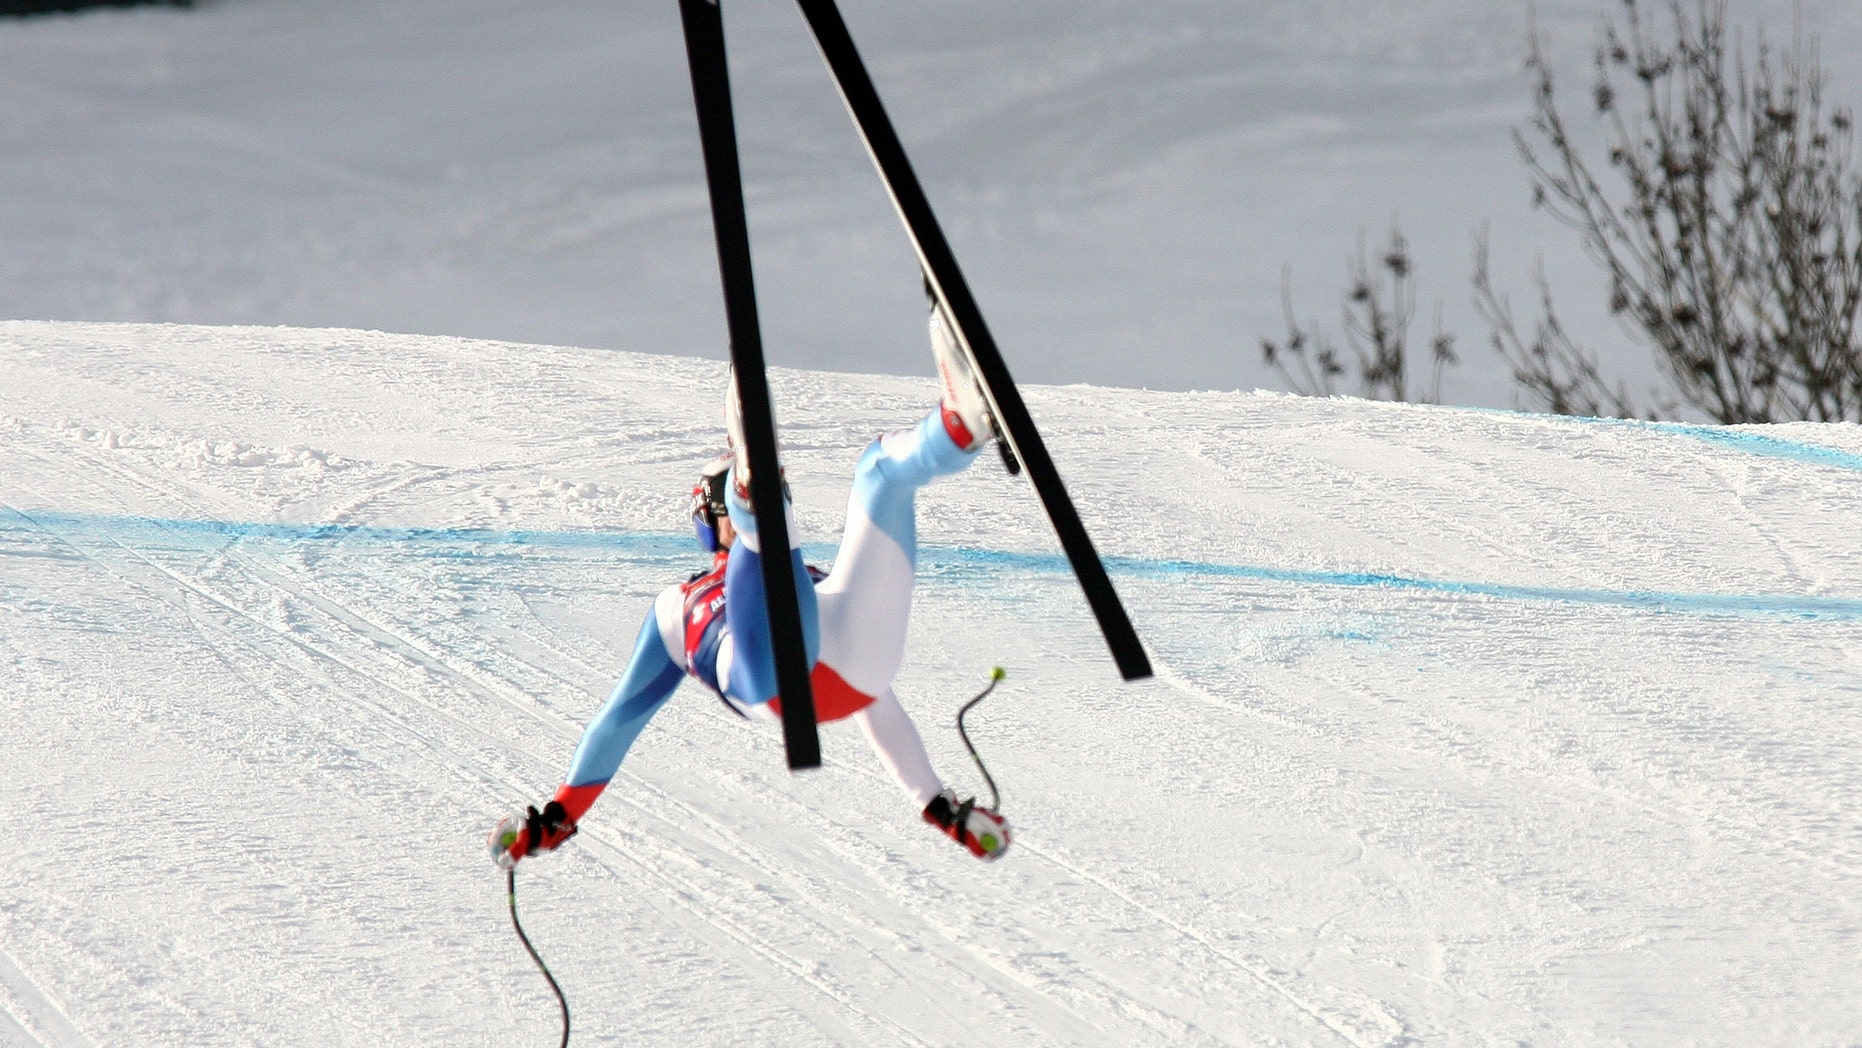 Swiss skier Daniel Albrecht as he lost control during a downhill training on the legendary Streif downhill course in Kitzbuehel, Austria. (AP Photo/Giovanni Auletta, File)